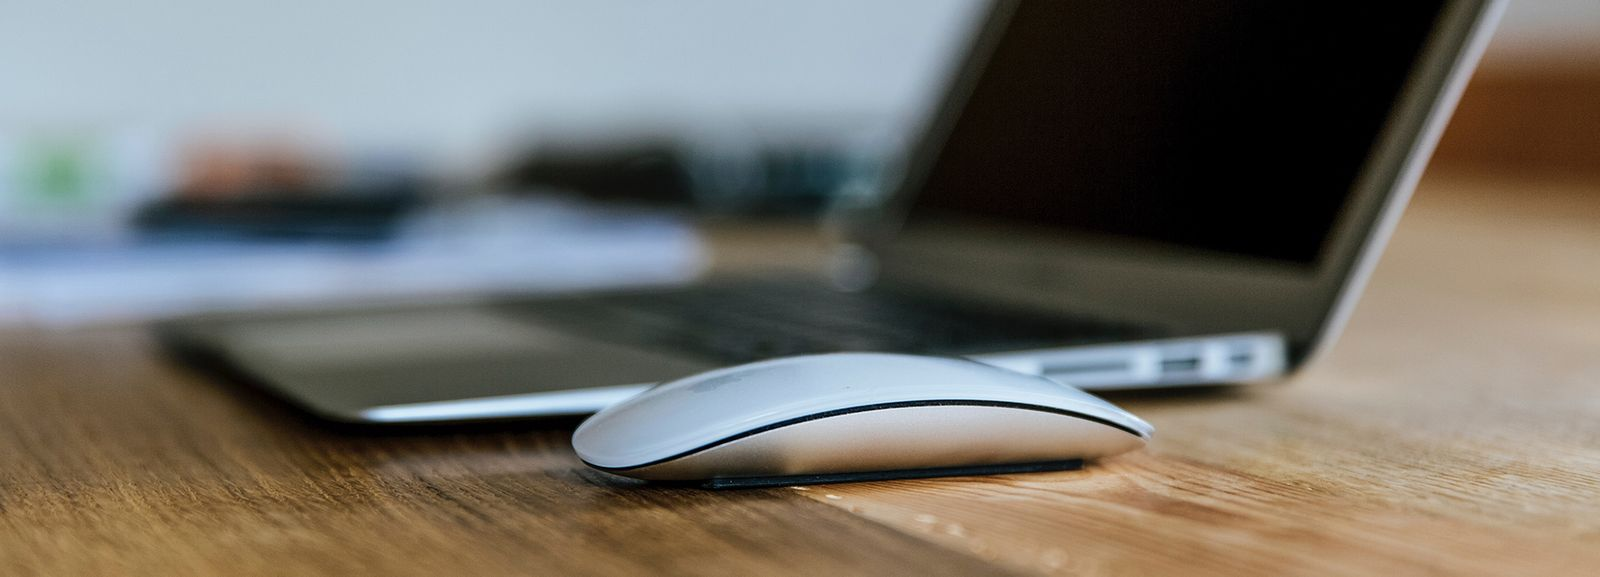 MacBook Air and Apple Magic Mouse on brown wooden table photo